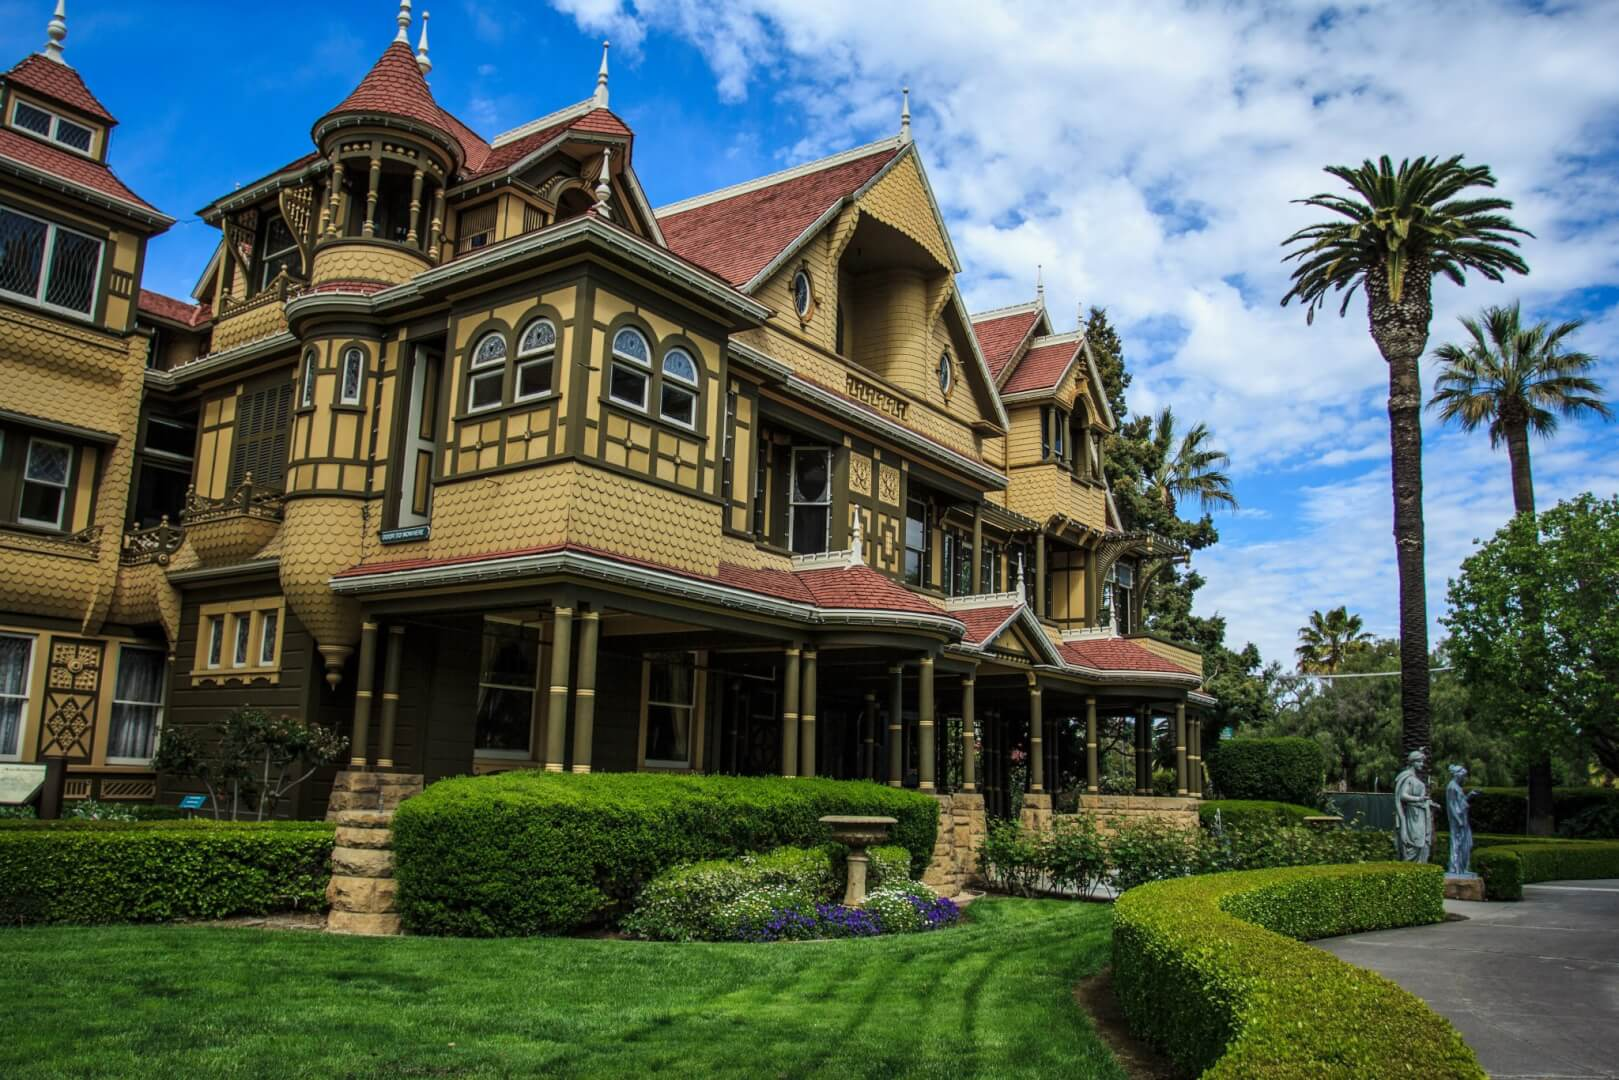 winchester mystery house opens for trick-or-treaters ages 12 and under